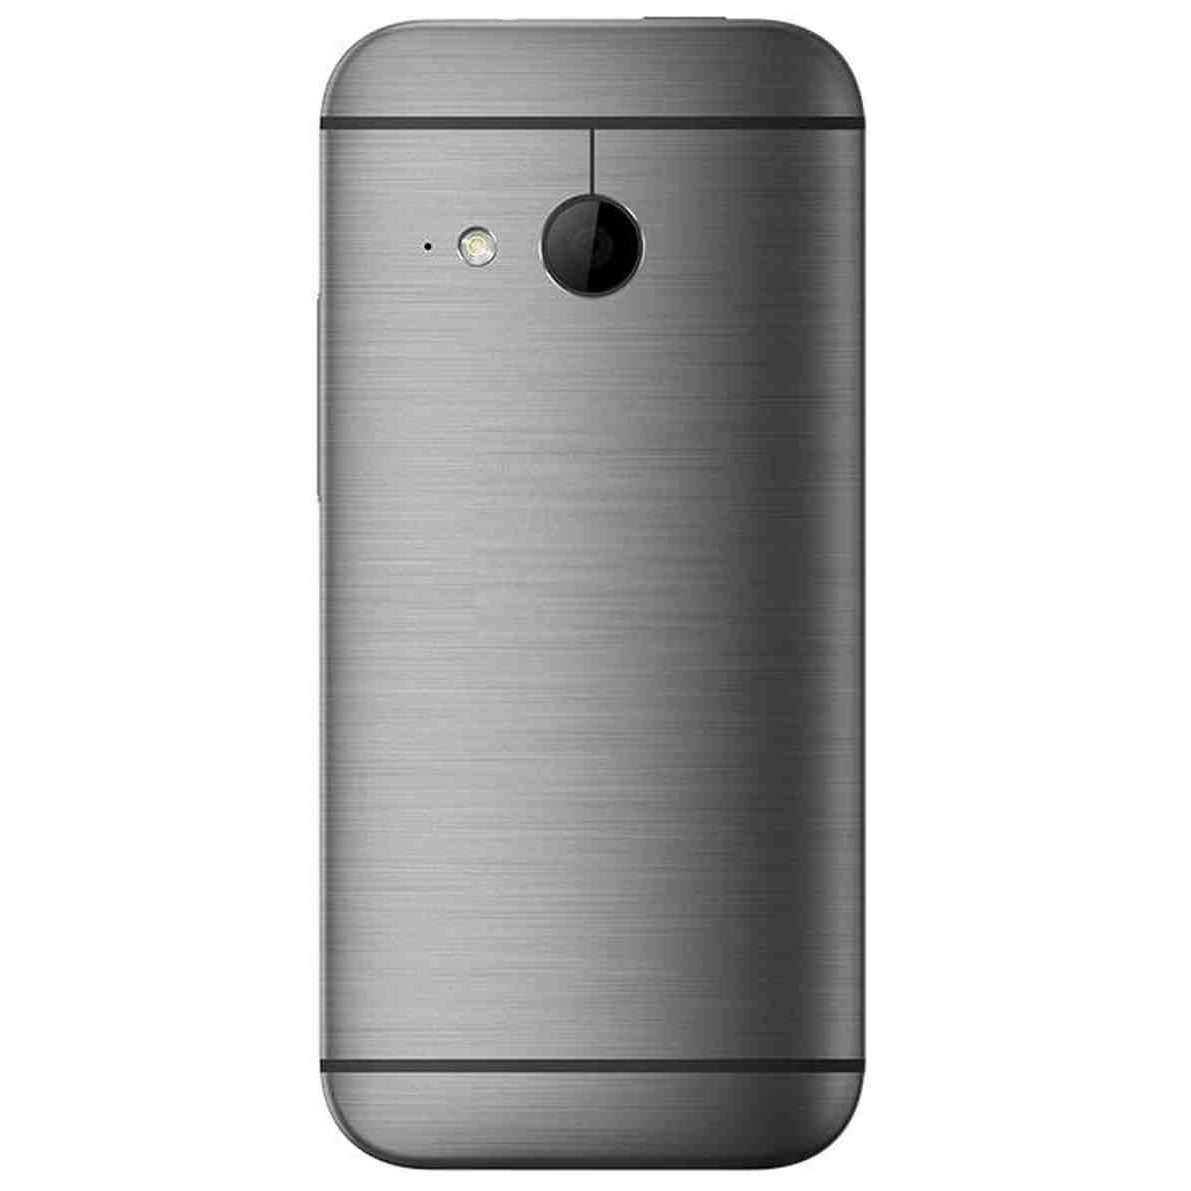 new concept 12670 3b6e0 Back Panel Cover for HTC One mini 2 - Grey